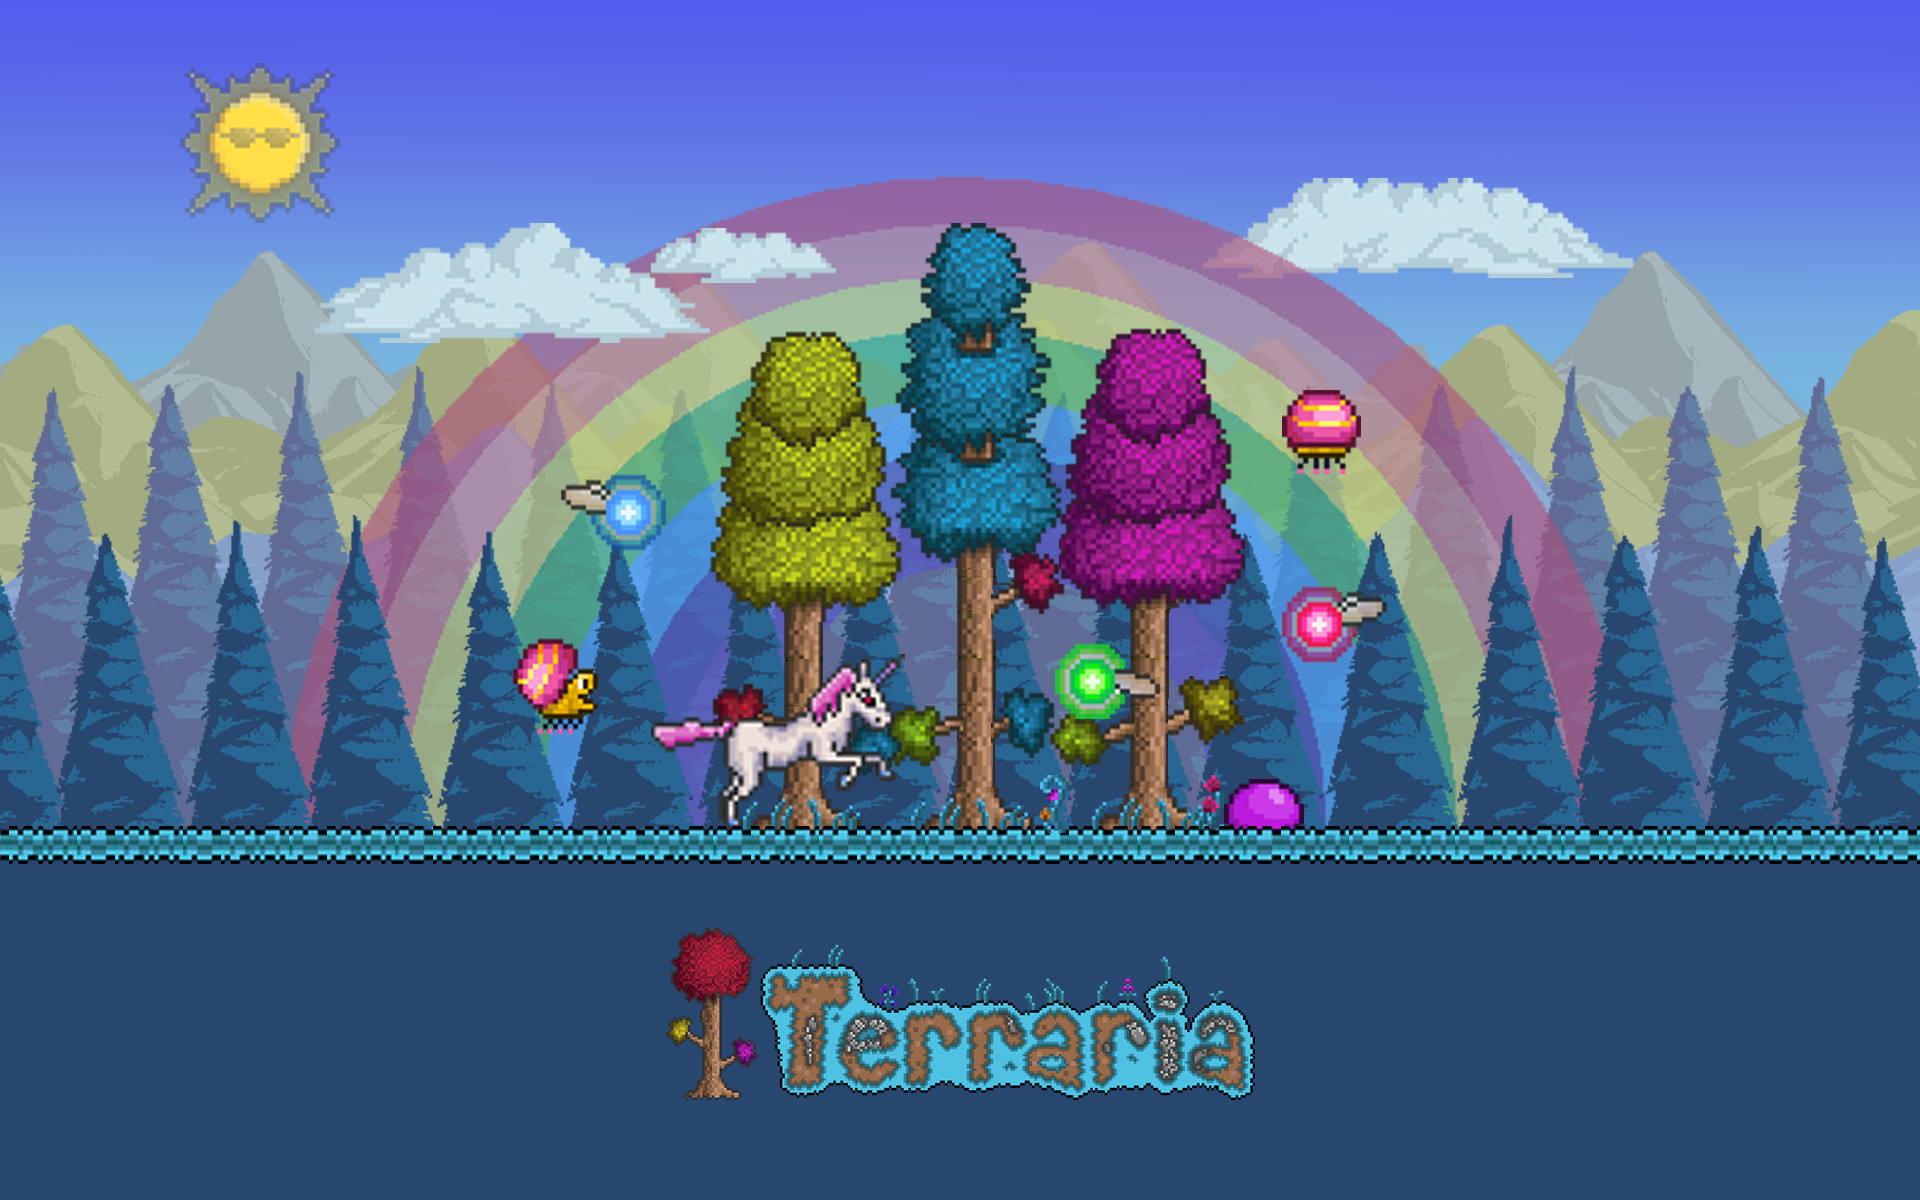 Terraria Wallpapers HD widescreen